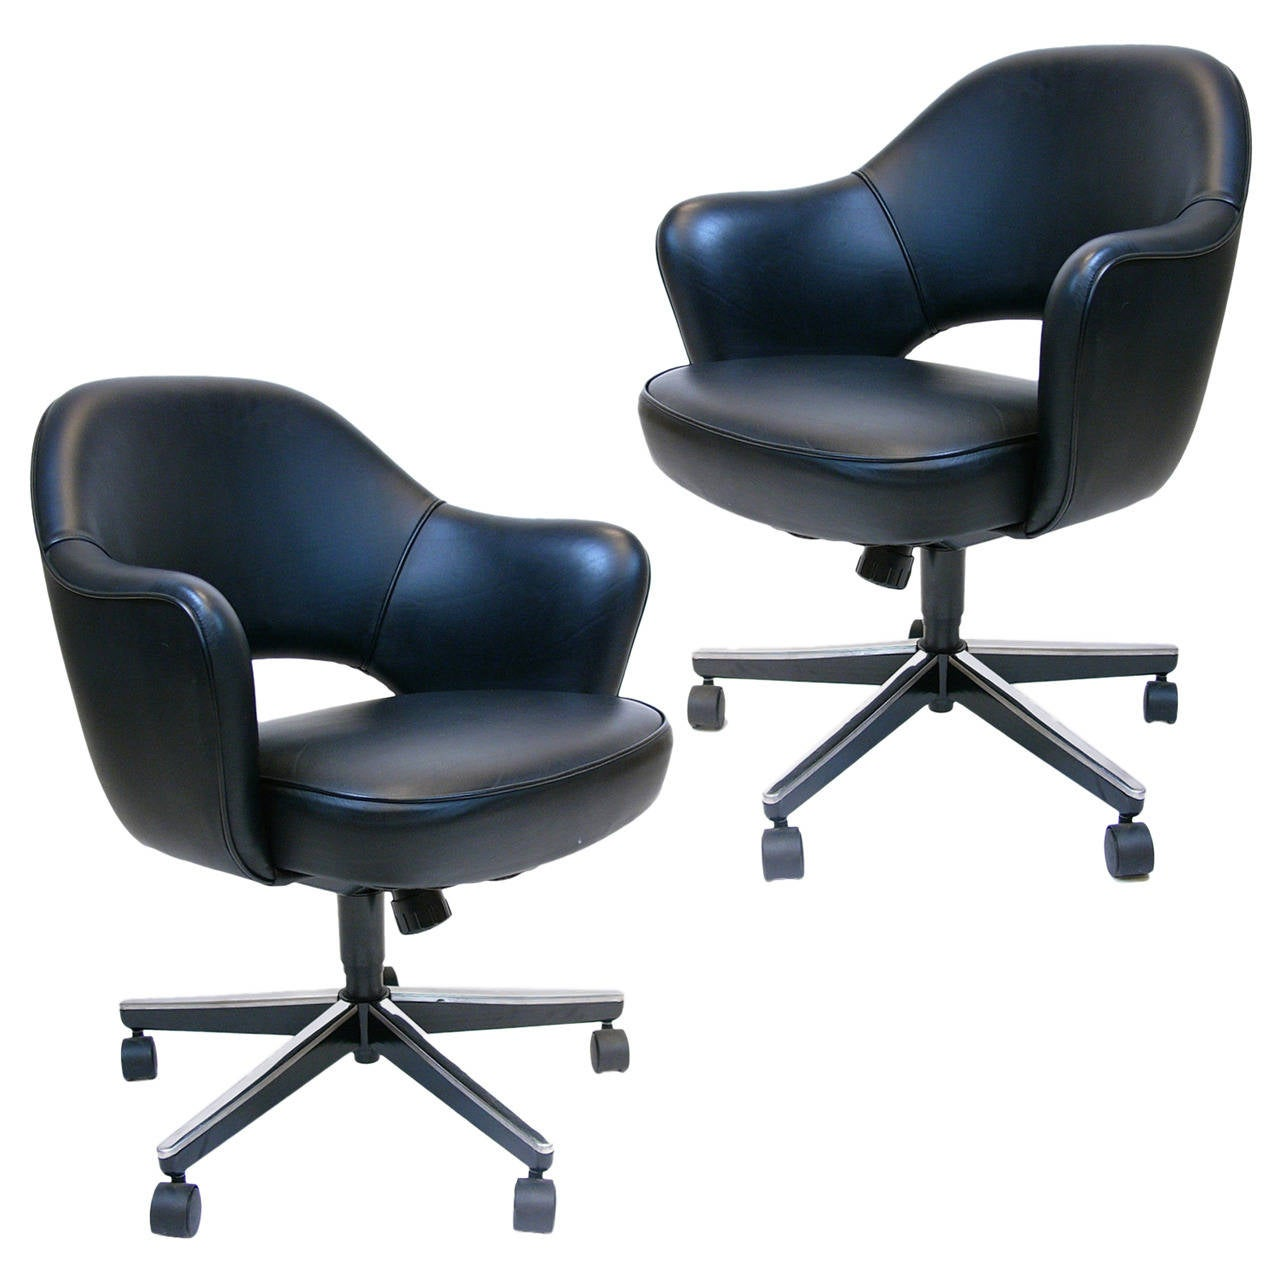 Pair Of Eero Saarinen Executive Swivel Armchairs For Knoll In Black Leather  For Sale